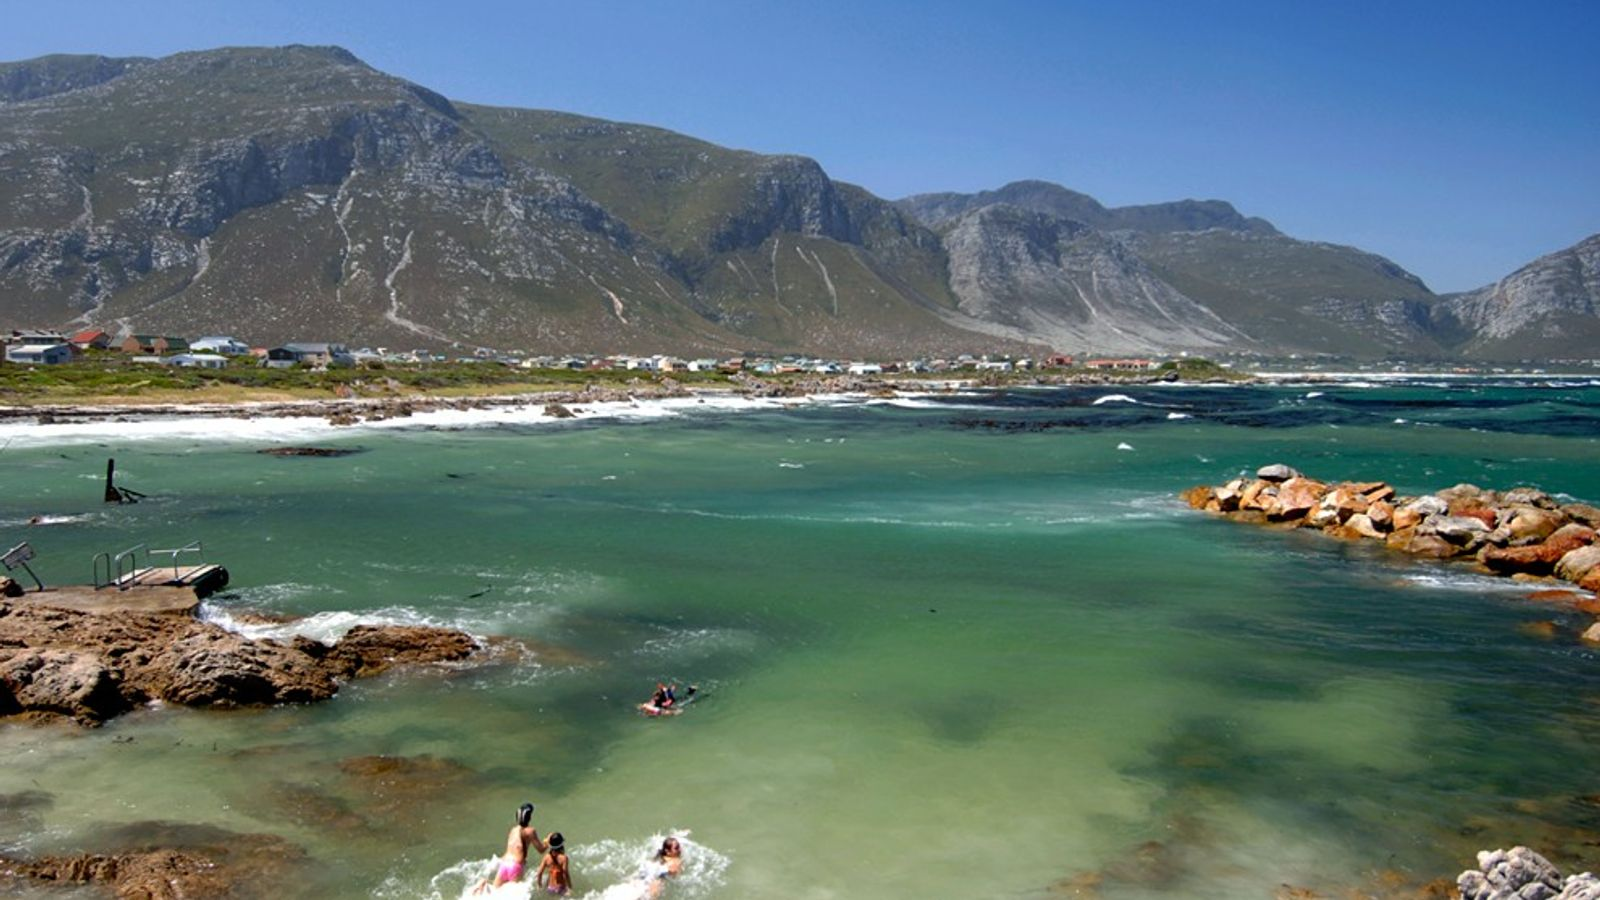 2. Cape Town, South Africa